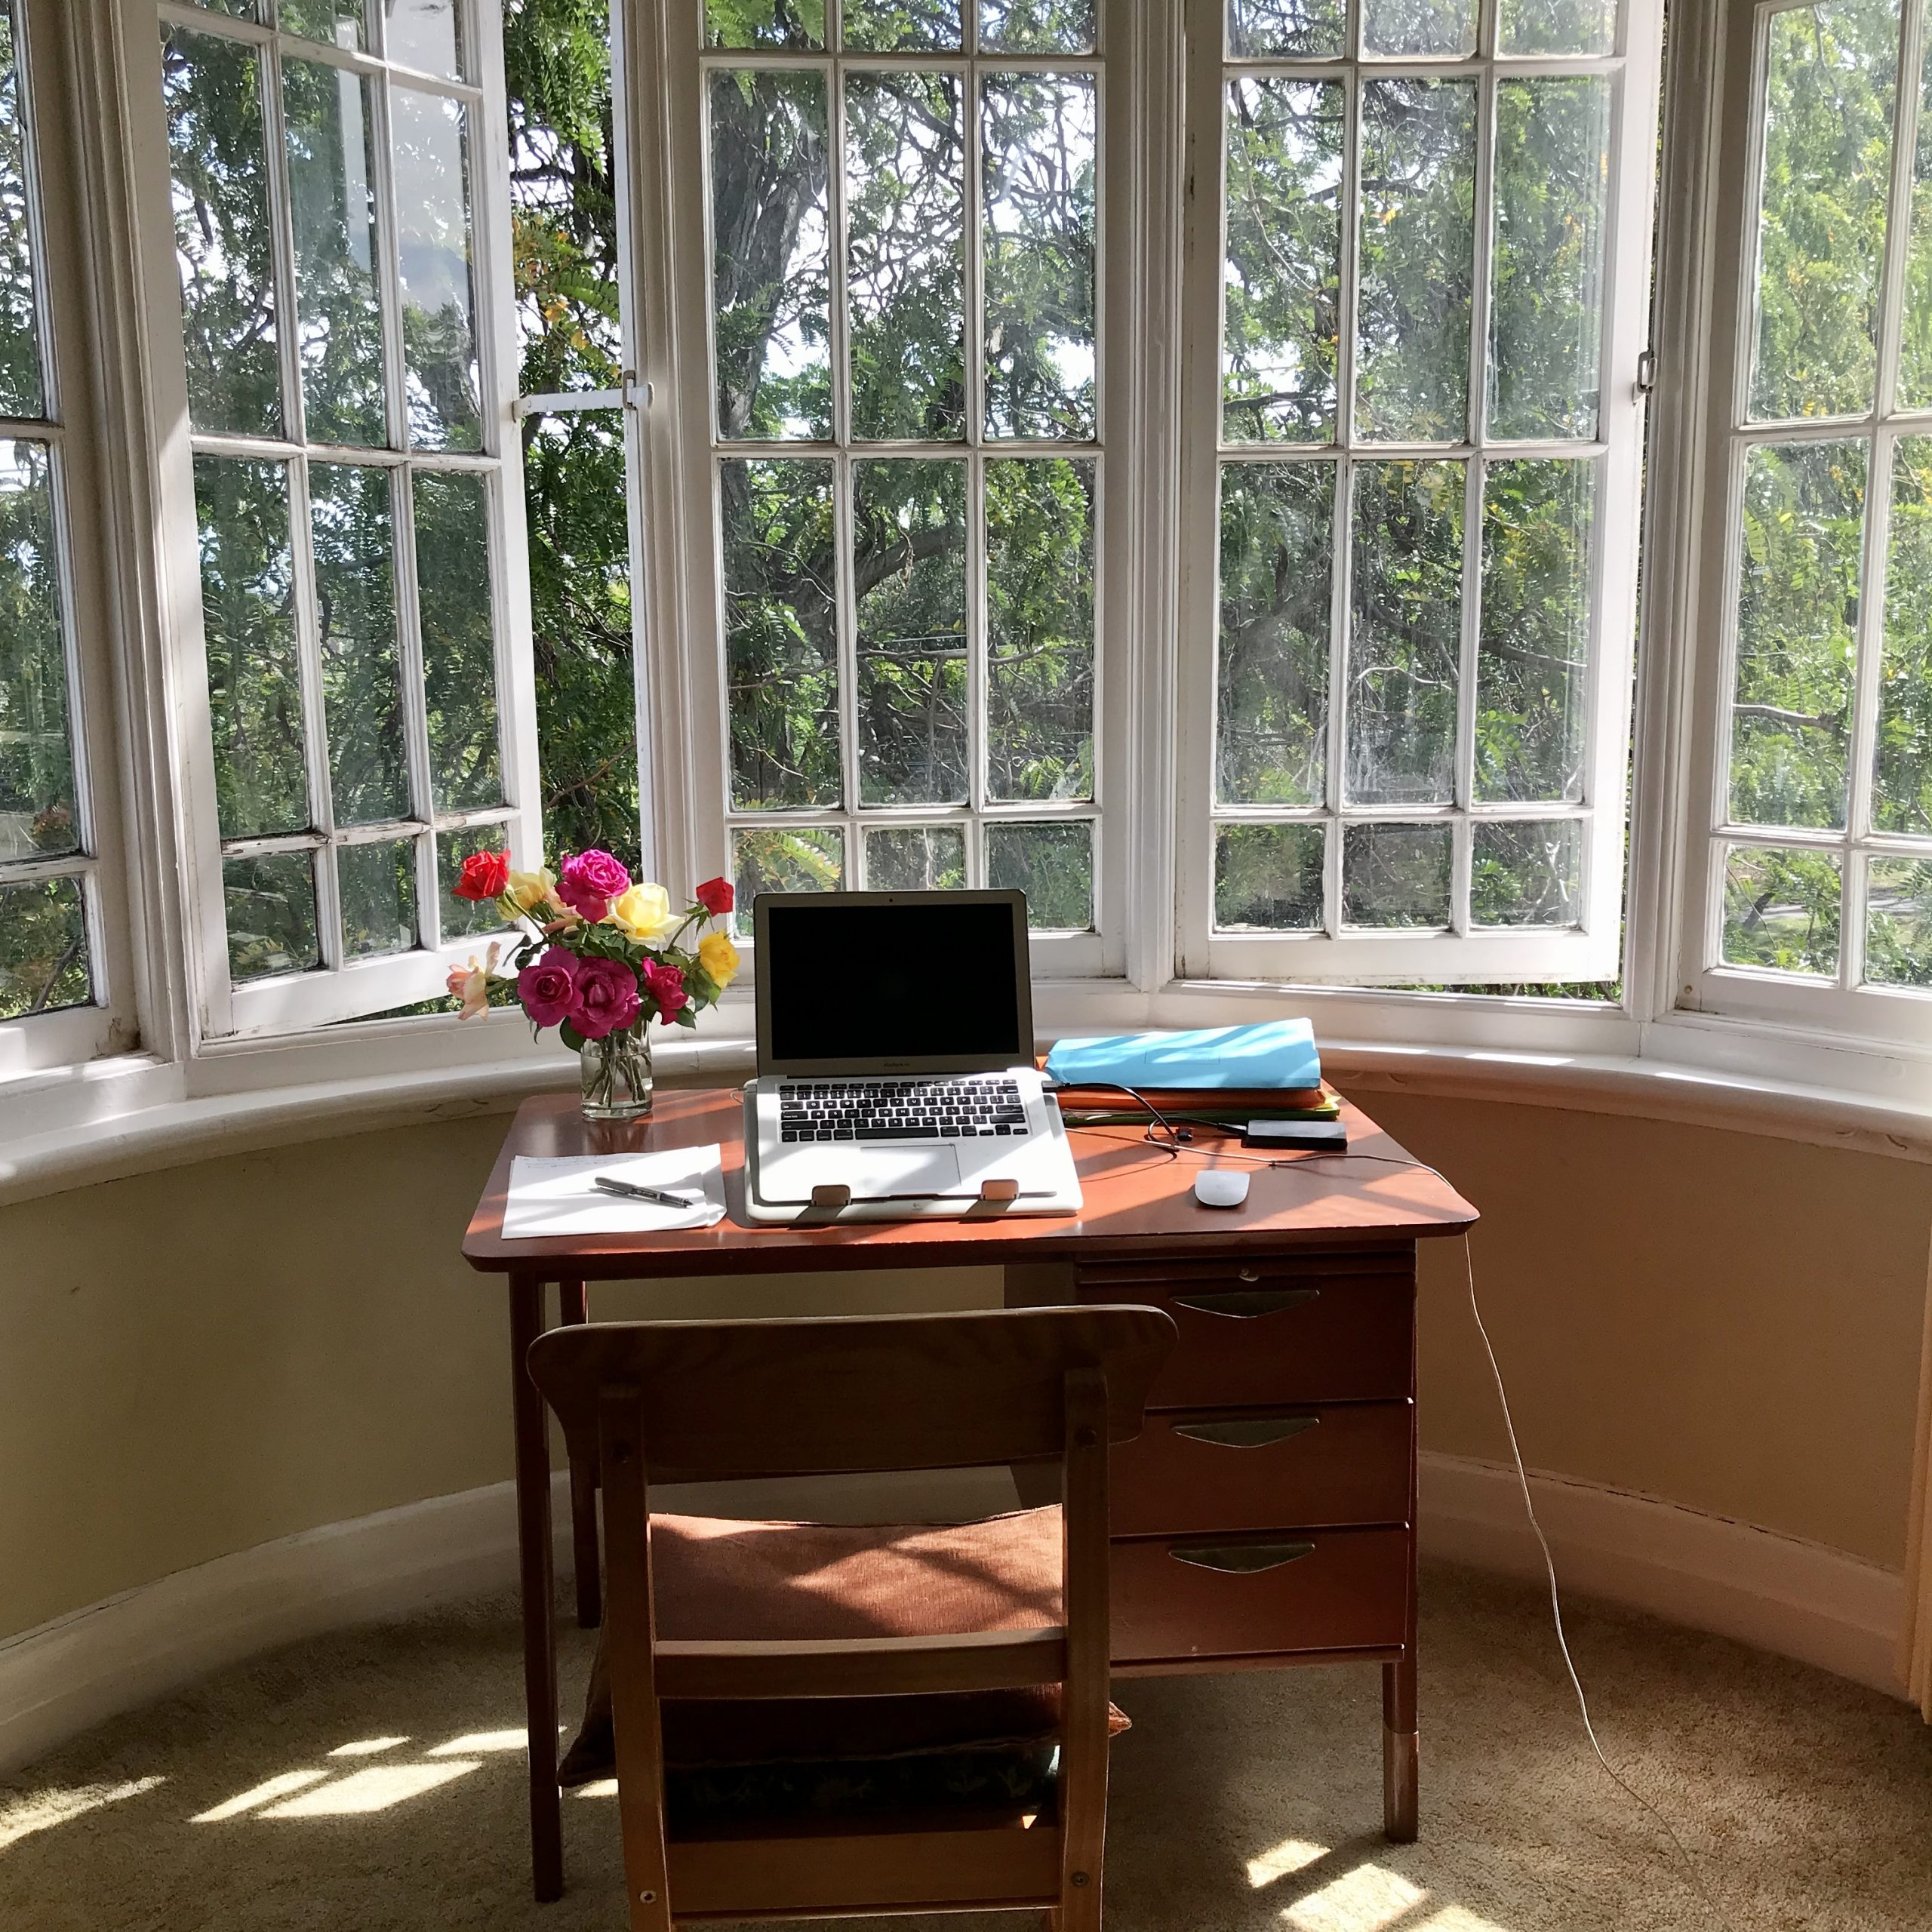 A desk in front of open casement windows with a laptop and a vase of roses